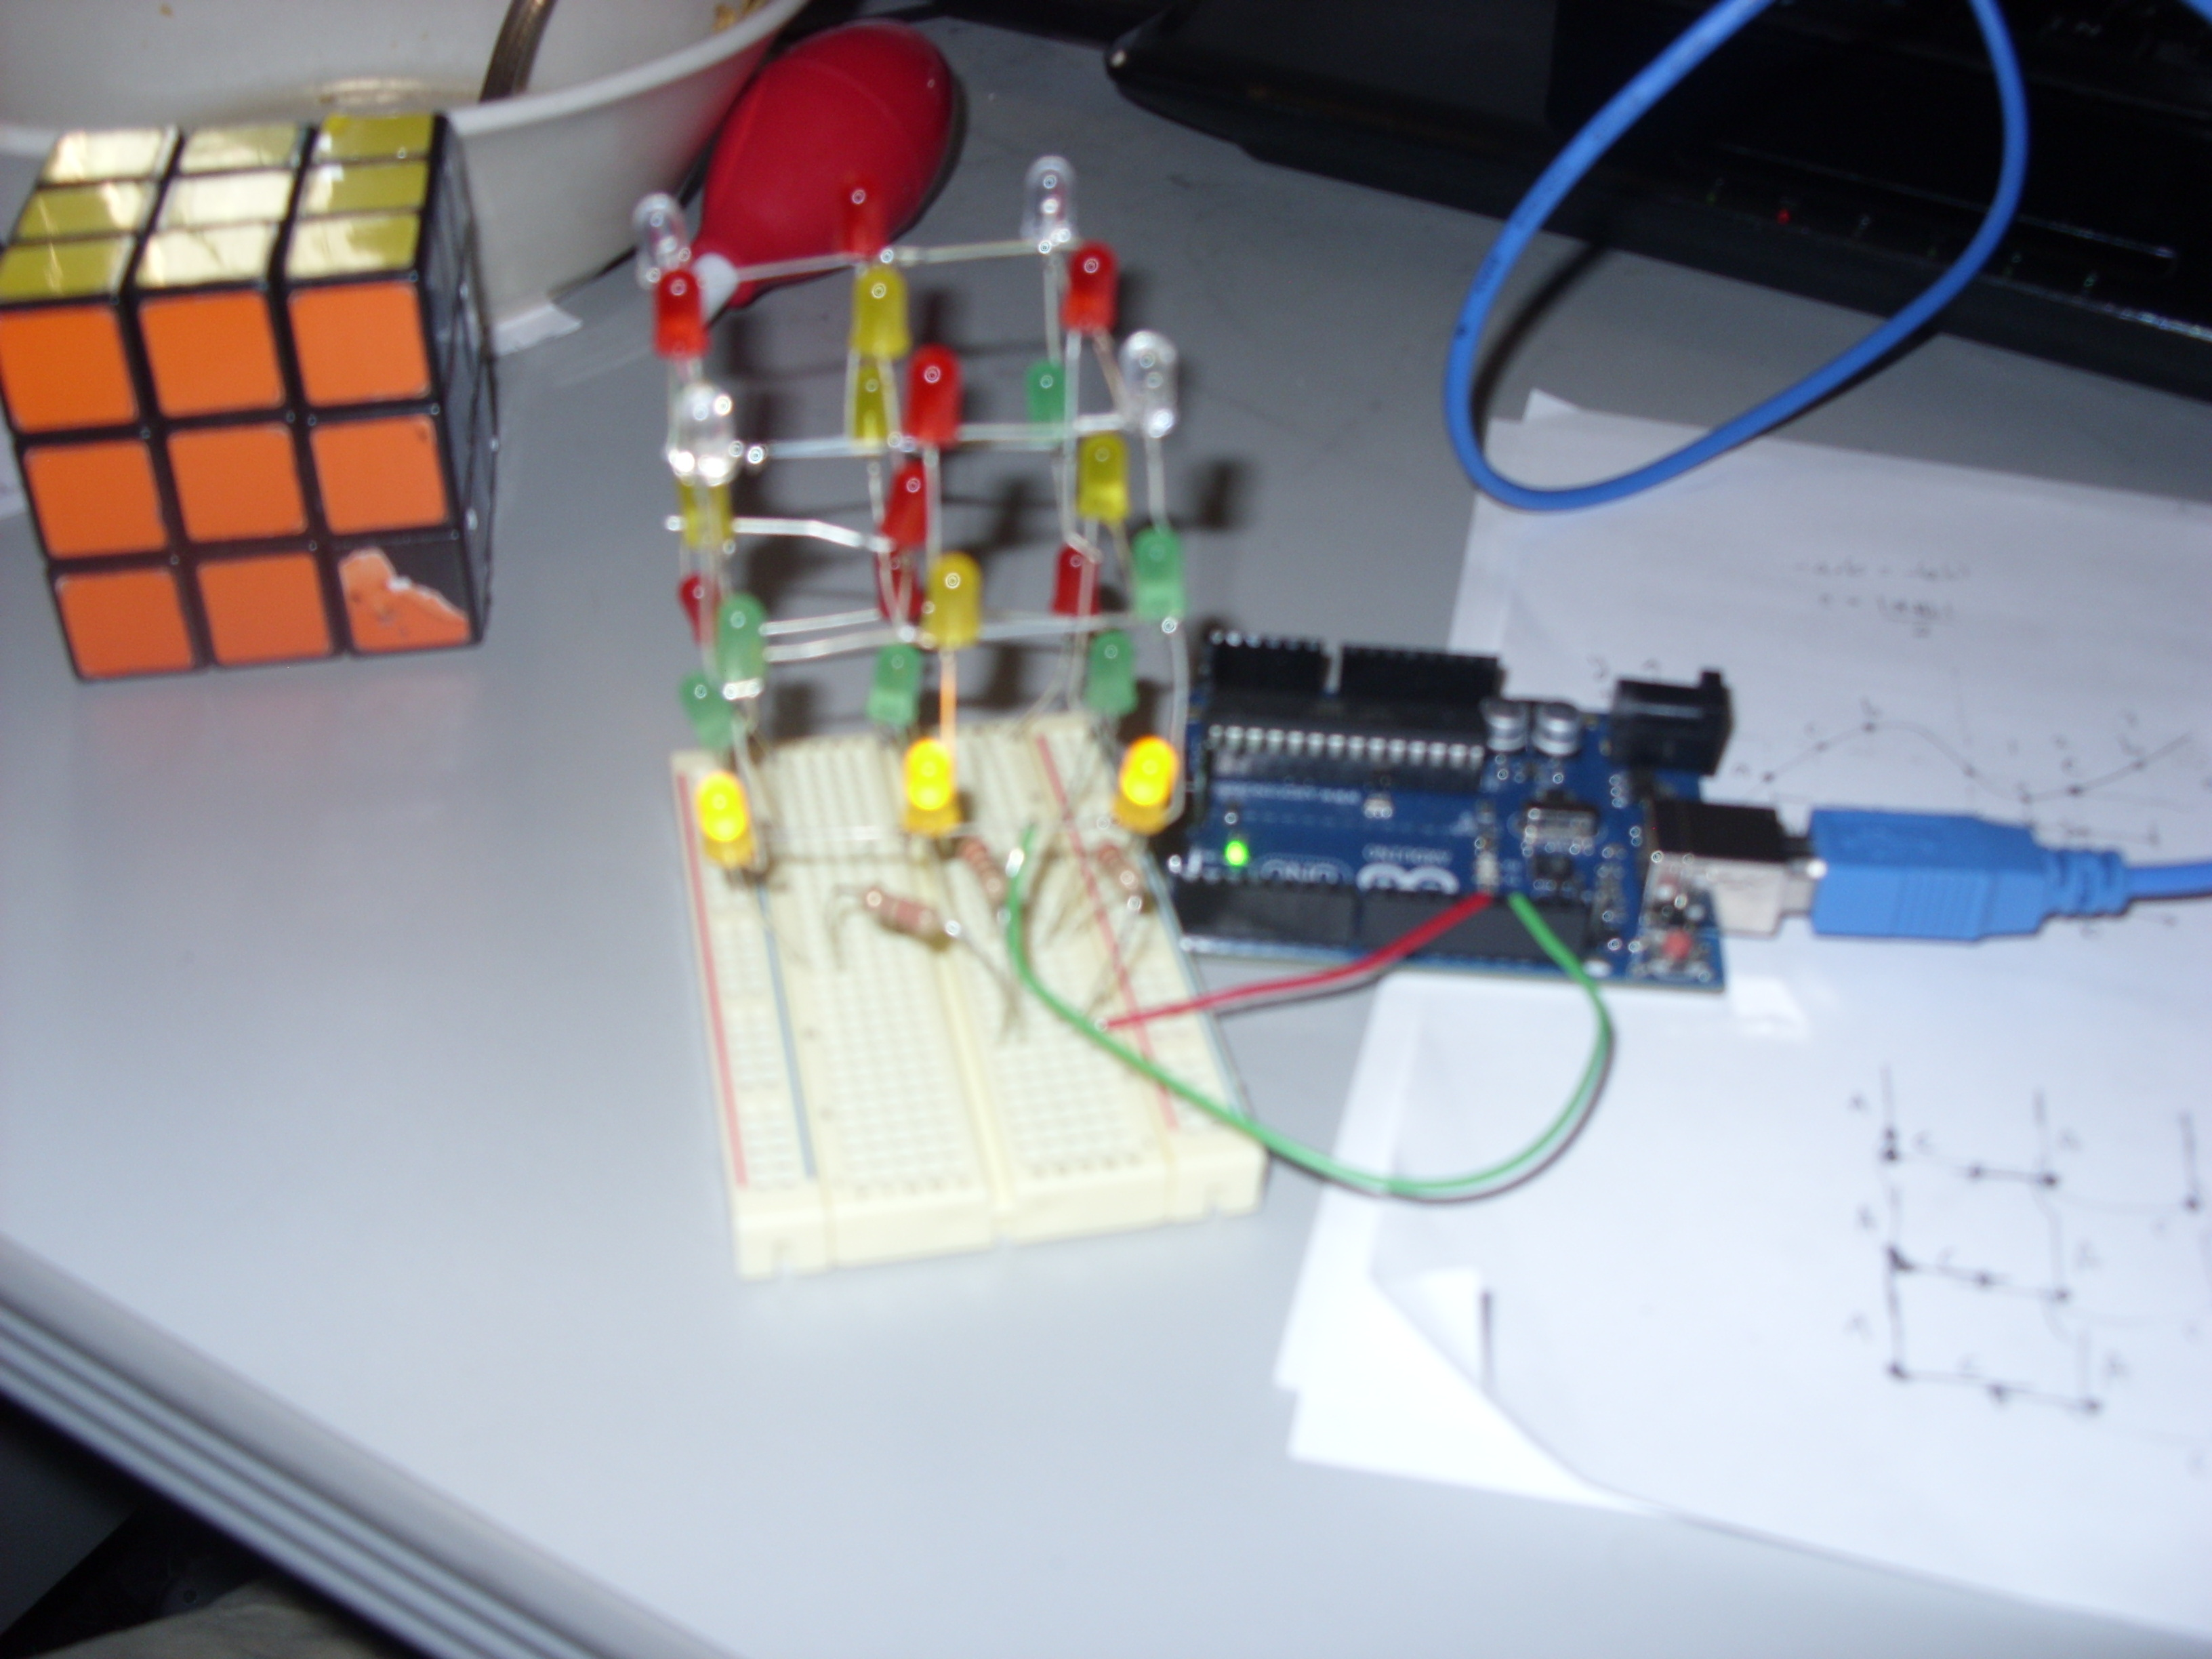 3 x 3 LED Cube with Arduino UNO